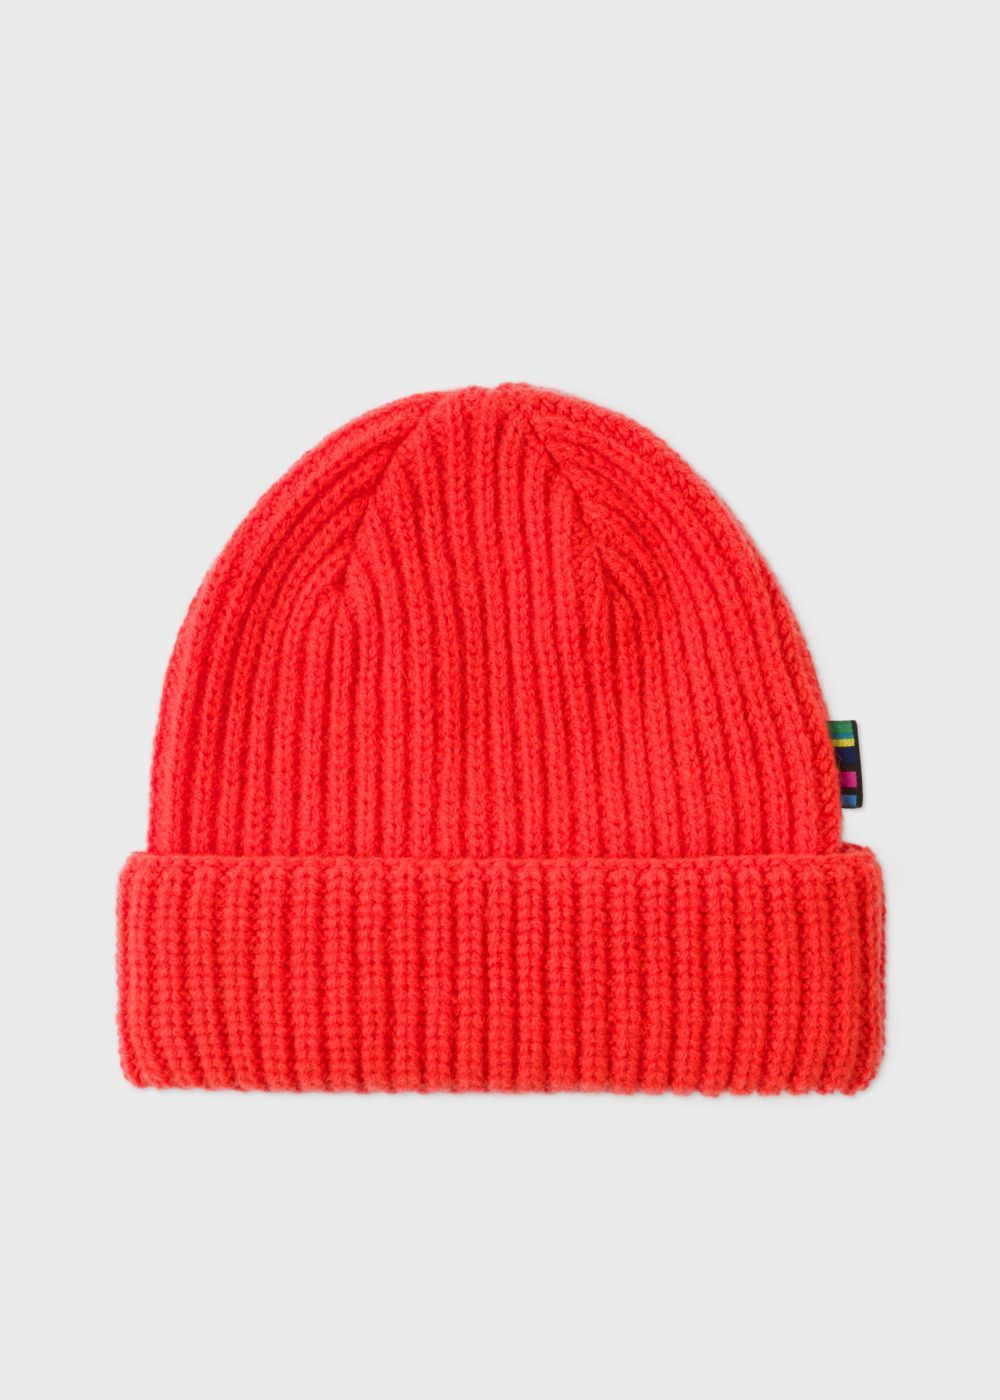 71e5e3868b3 Men s Neon Red Wool Beanie Hat by Paul Smith